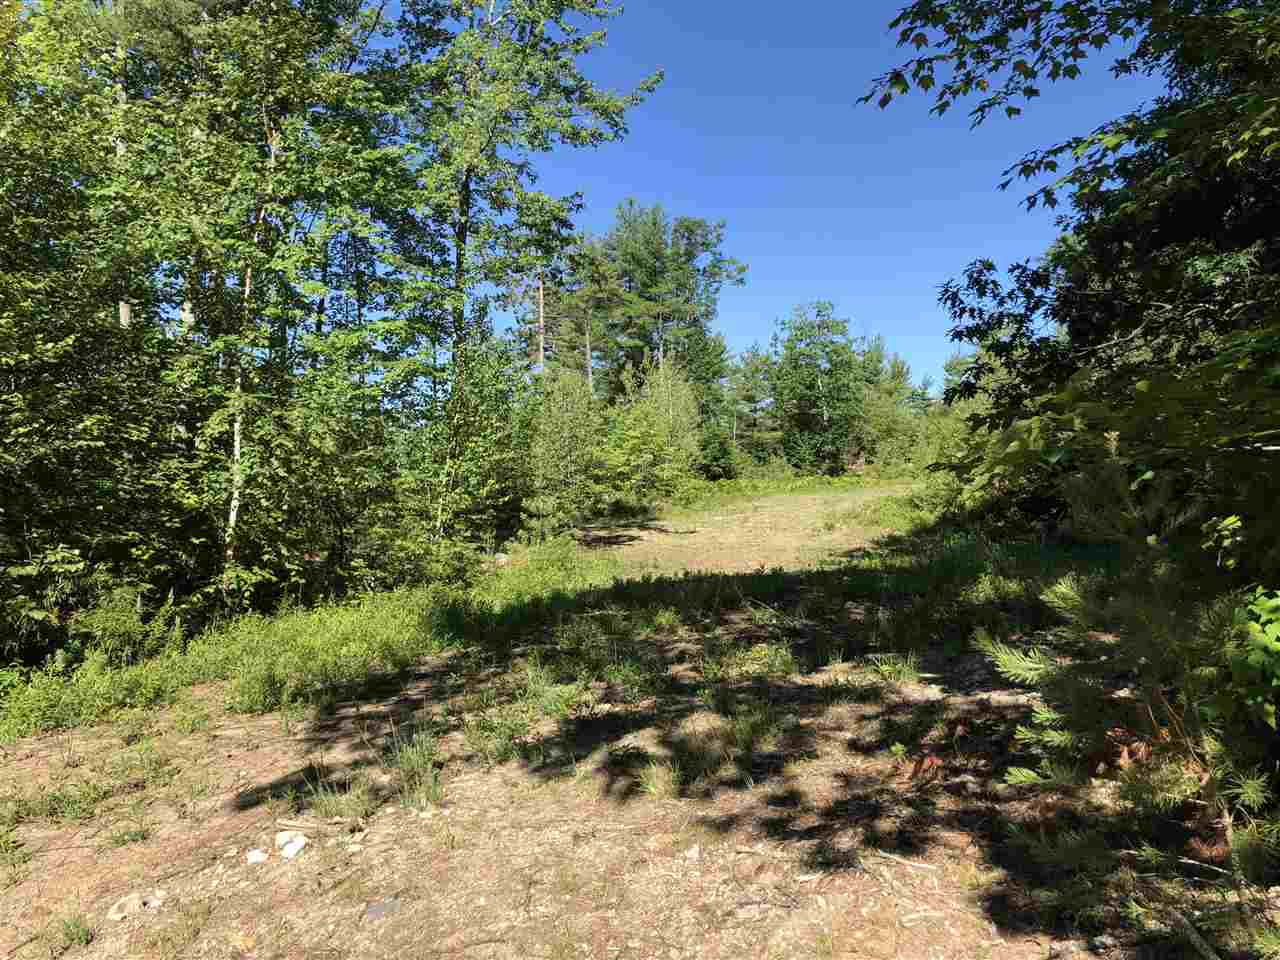 VILLAGE OF OSSIPEE VILLAGE NH IN TOWN OF OSSIPEE NH LAND  for sale $200,000